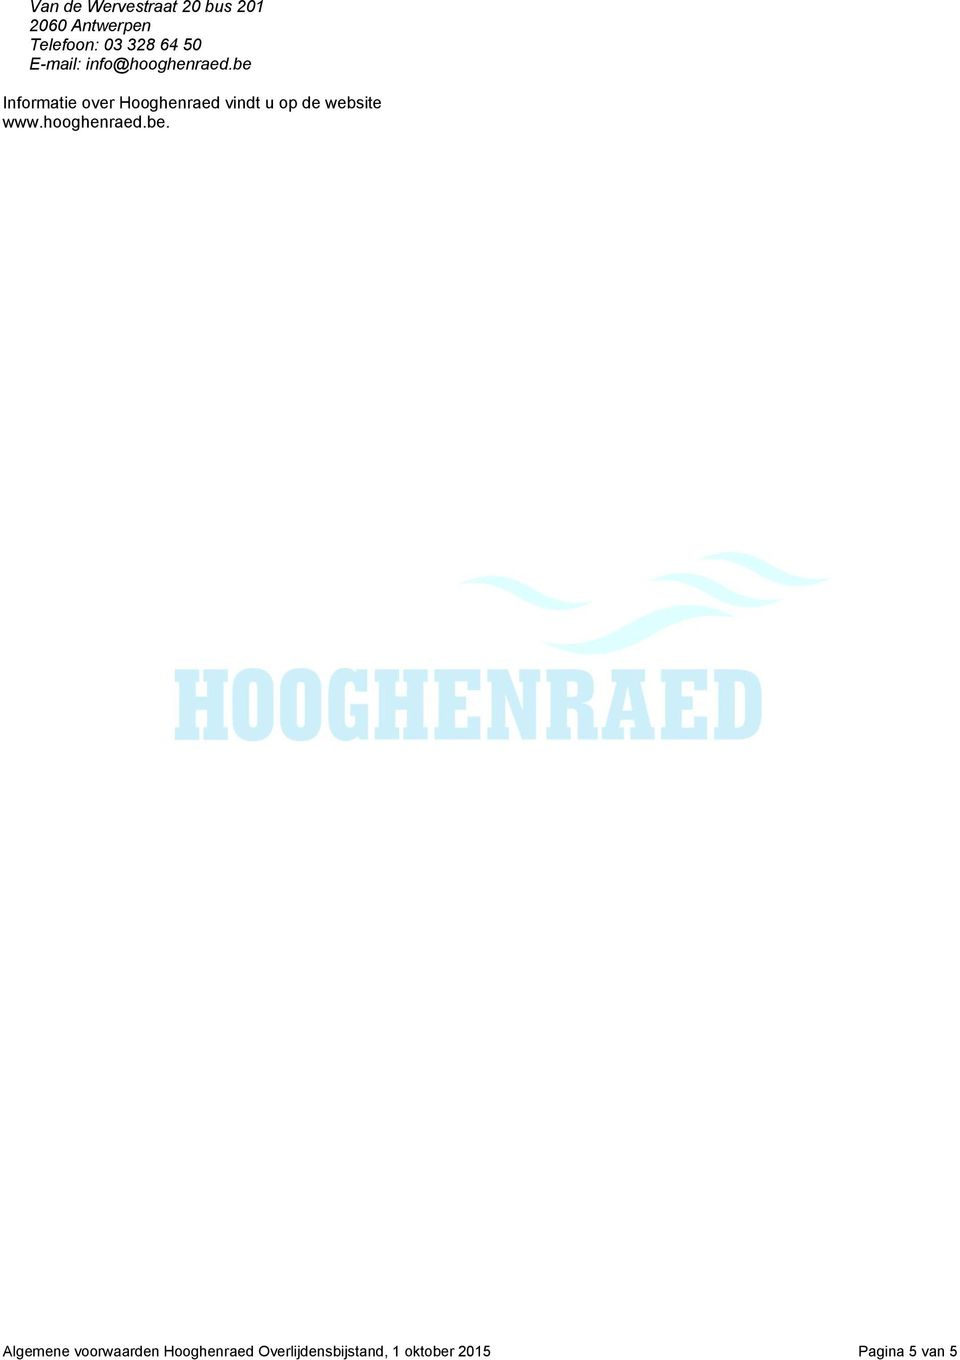 be Informatie over Hooghenraed vindt u op de website www.